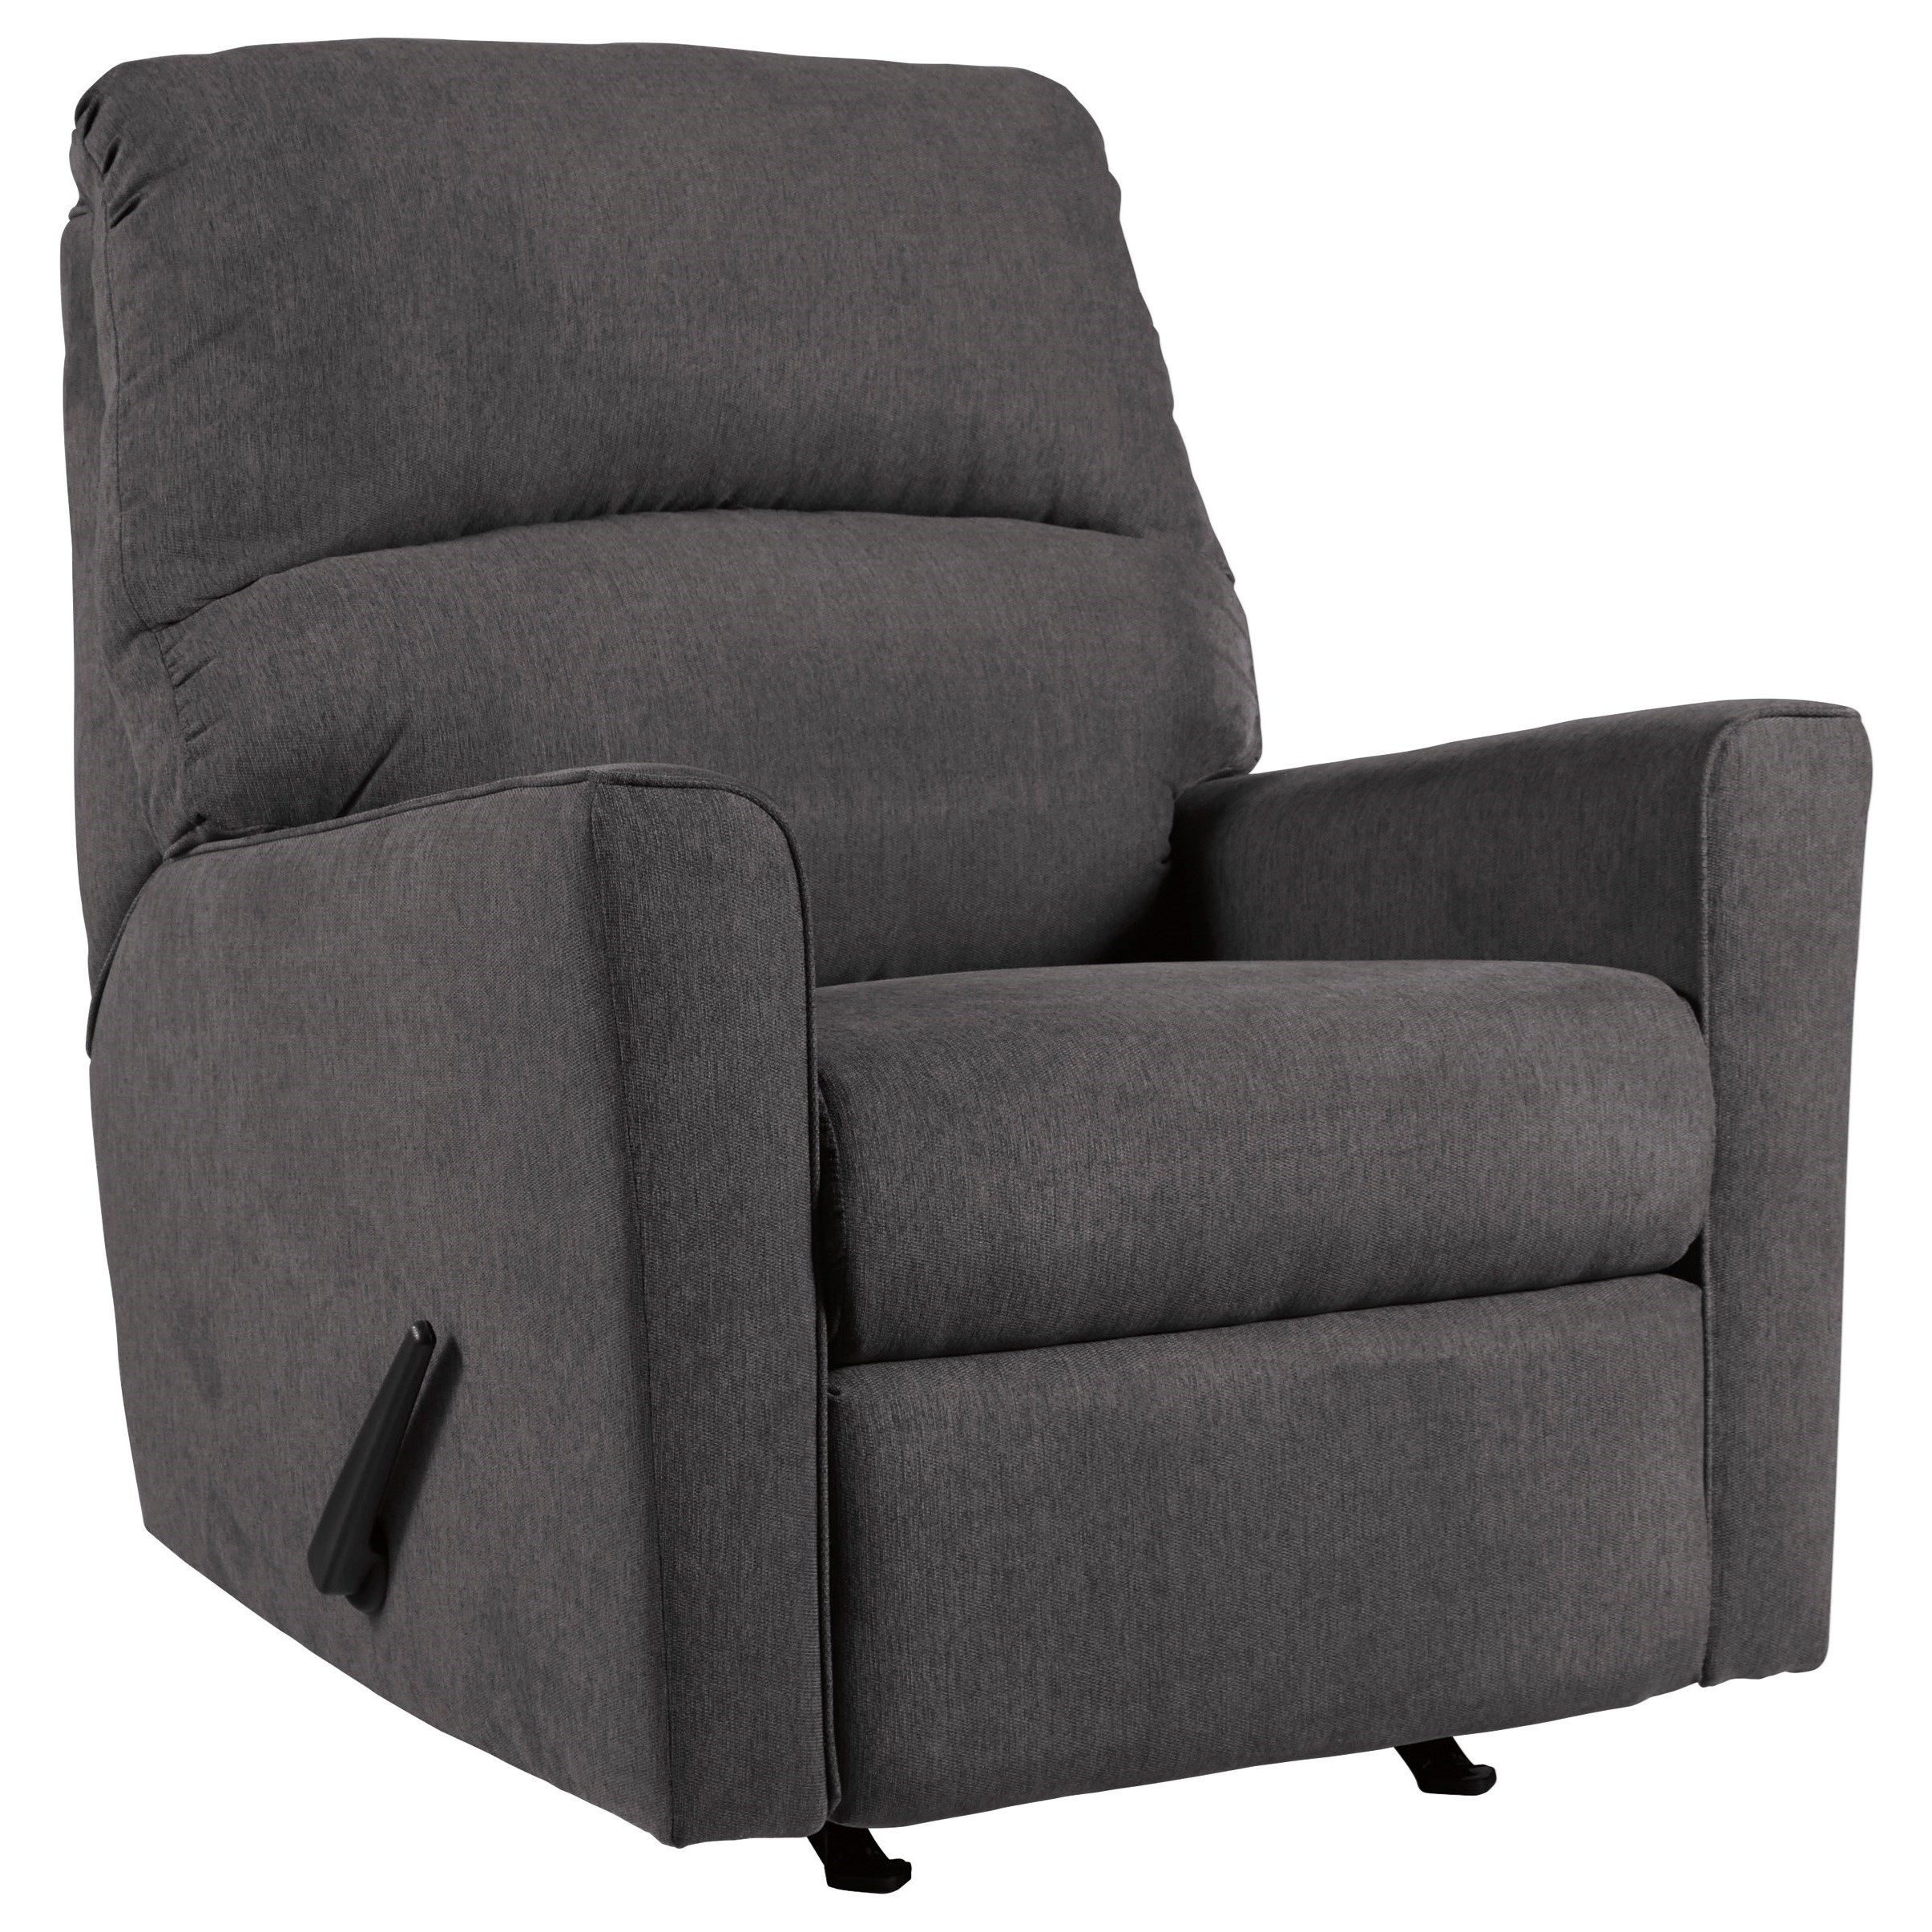 Signature Design by Ashley Alenya - Charcoal Rocker Recliner - Item Number: 1660125